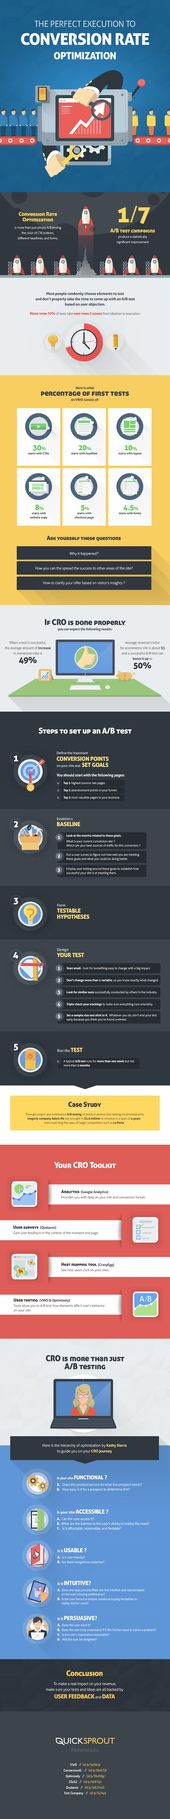 The Science Of Improving Conversion Rate Optimization – #infographic